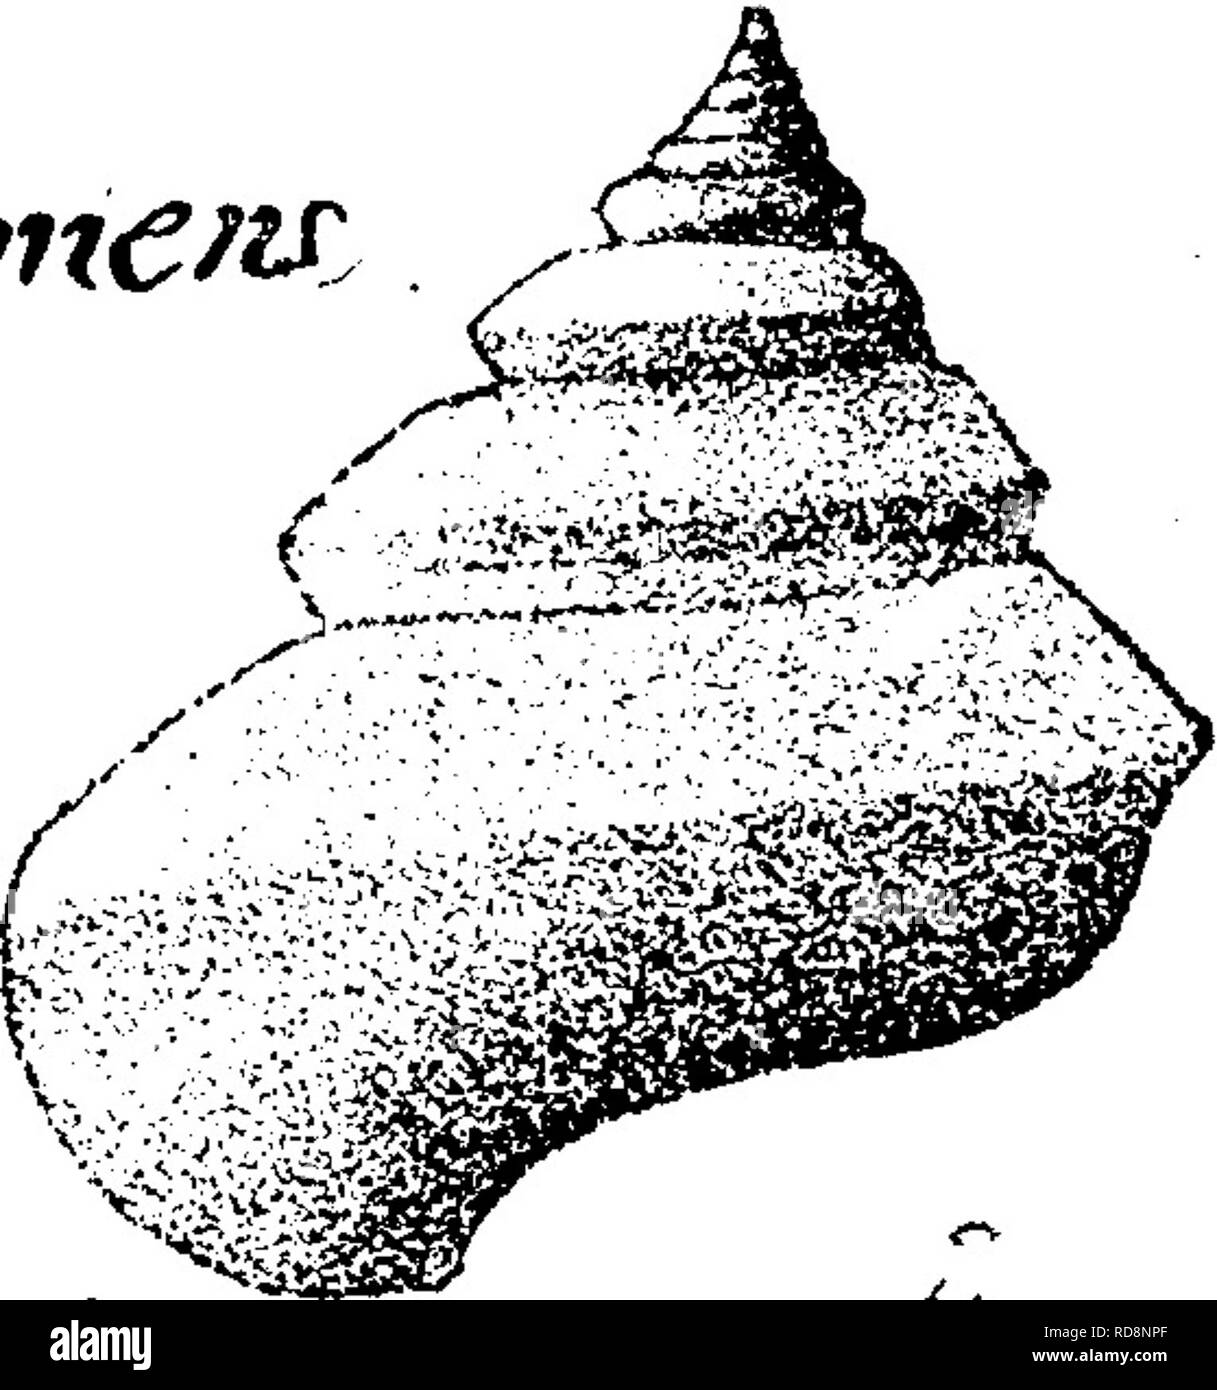 . A dictionary of the fossils of Pennsylvania and neighboring states named in the reports and catalogues of the survey ... Paleontology. p, cLurhajnCfss Wit^ ada, 111, i, 1884, page 23, plate 3, fig. 12, side view of a speci- men from Durham, Canada West; 12 ^, another showing mouth; crowded transverse striae; shell extremely thickened at the periphery of the last volute, so as to make an exactly circular mouth; a curious feature seen also in Pterocheilus primus^ Moore, from English Lias, Differs from P. hispiralis^ Hall, in more obliquely flattened spire, etc.— Guelph formation. Vb Pleurotom - Stock Image